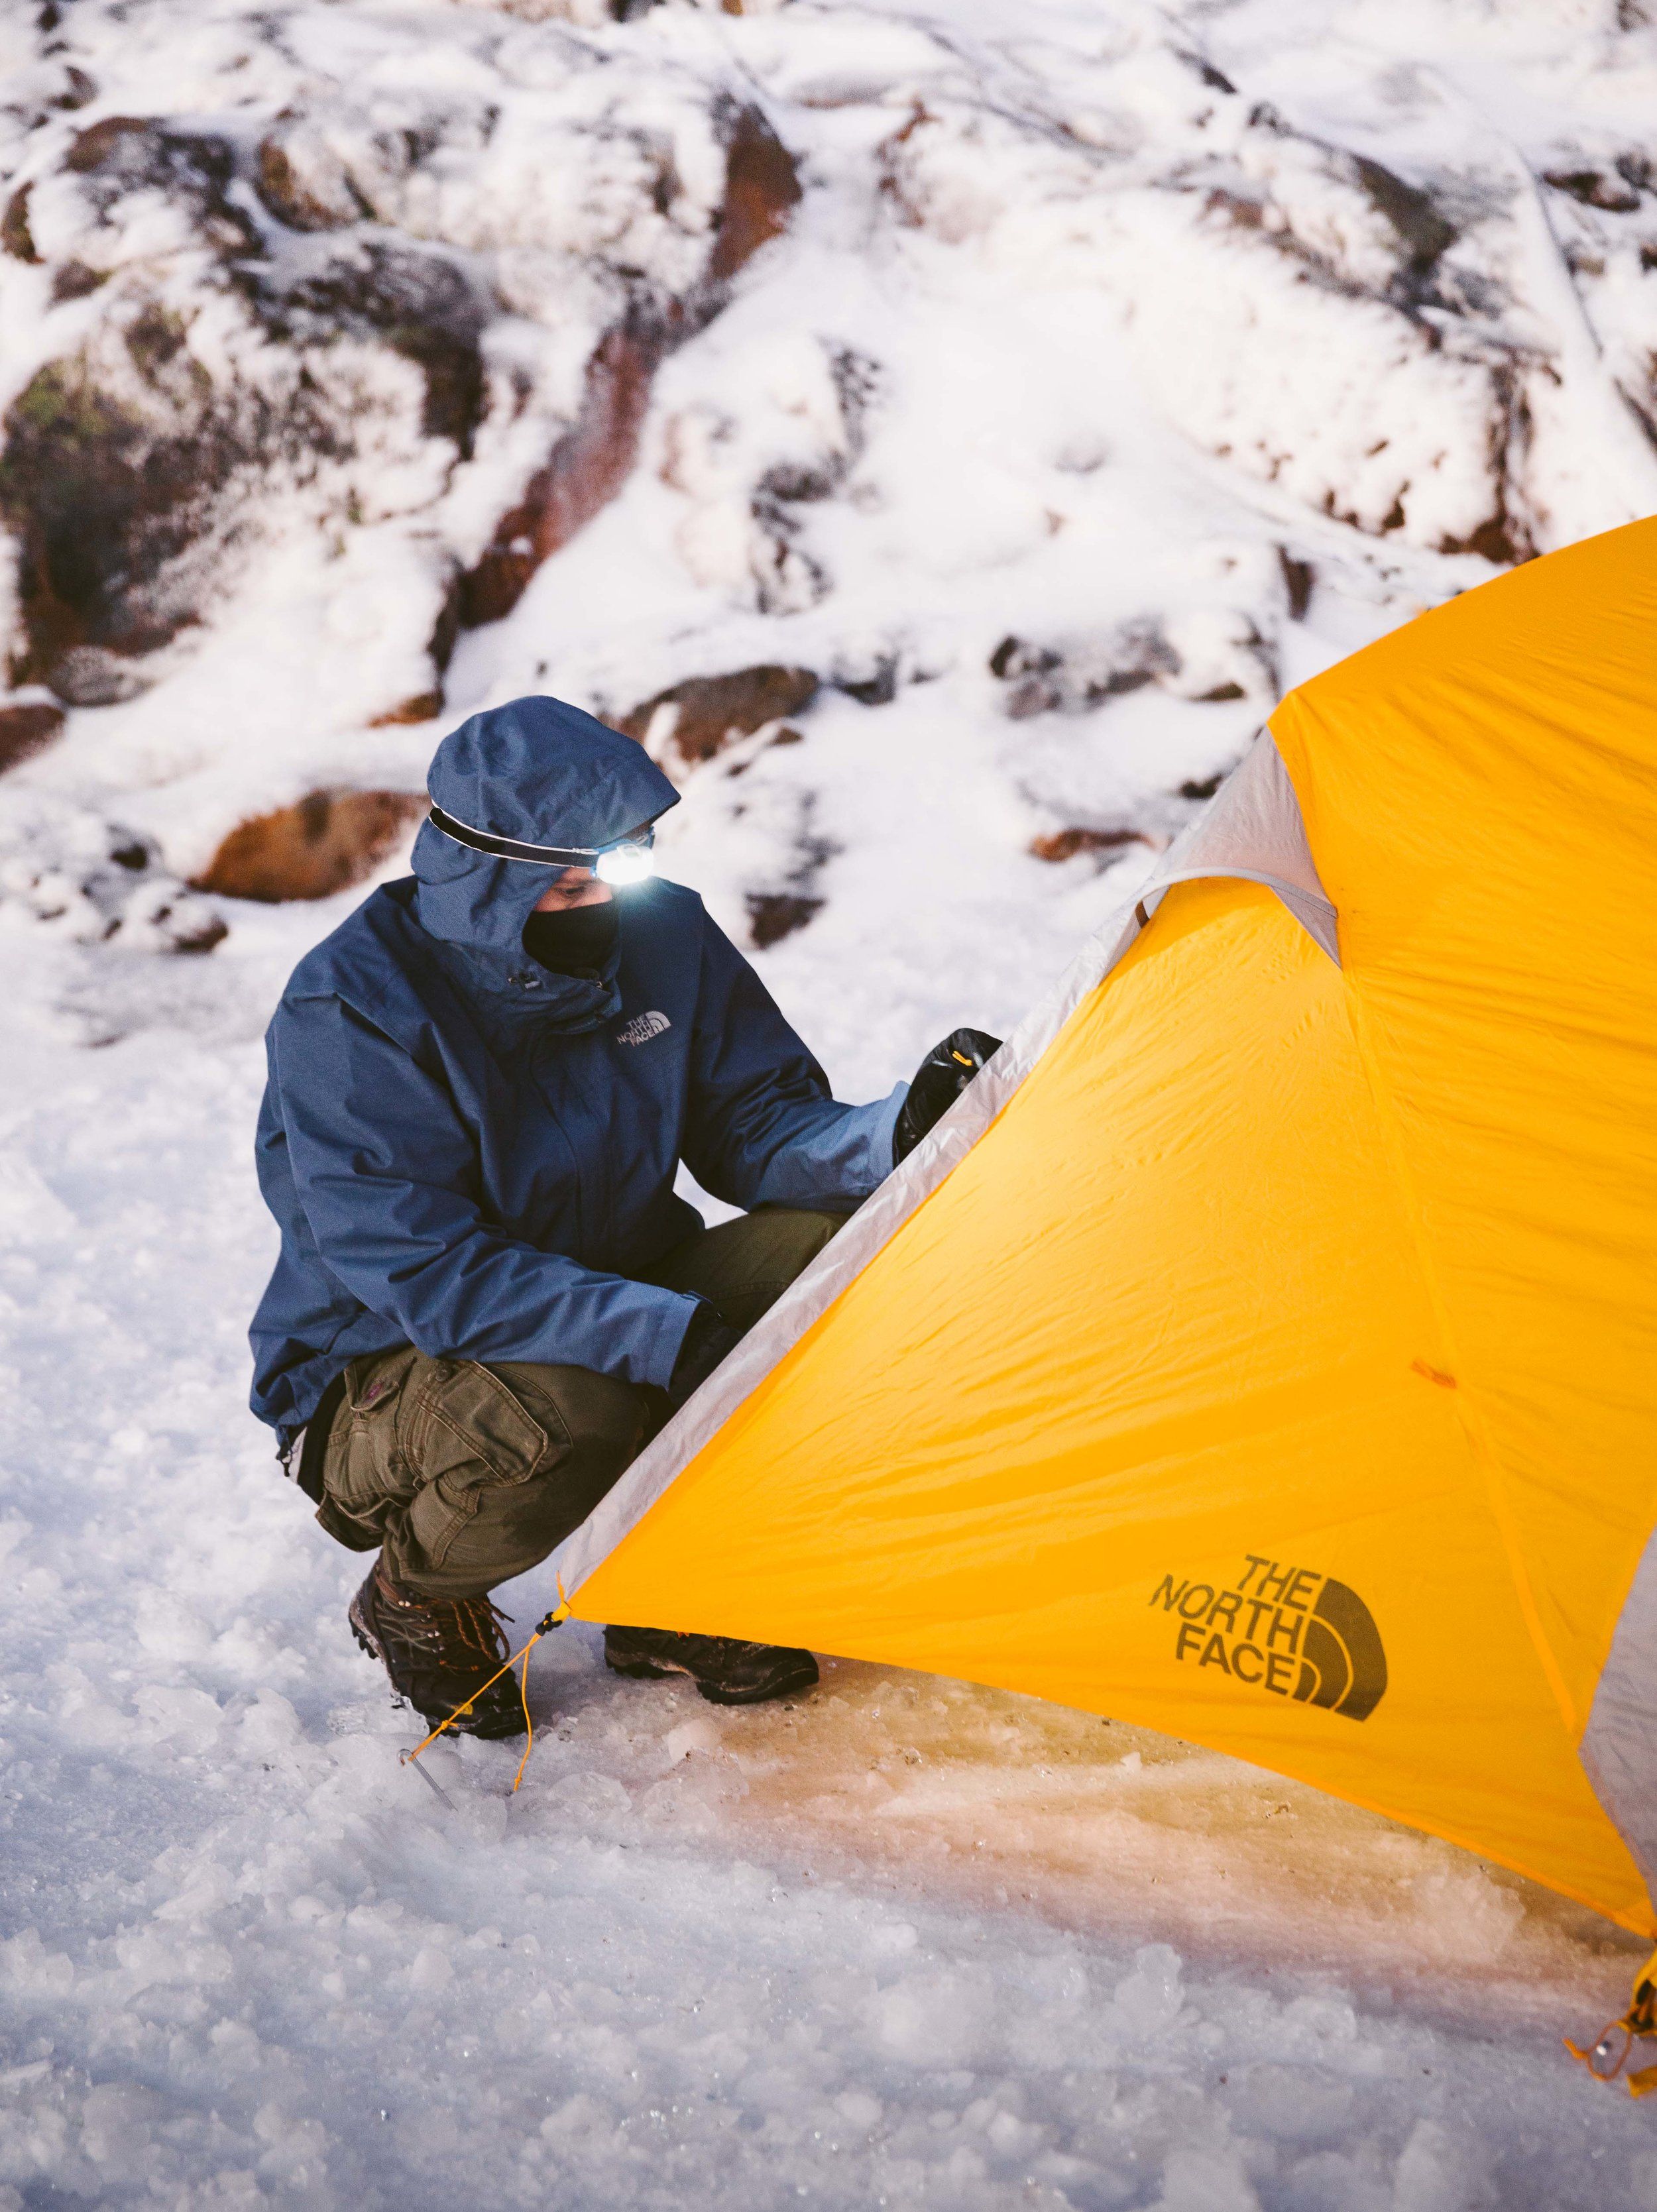 The North Face for Web (5 of 5).jpg